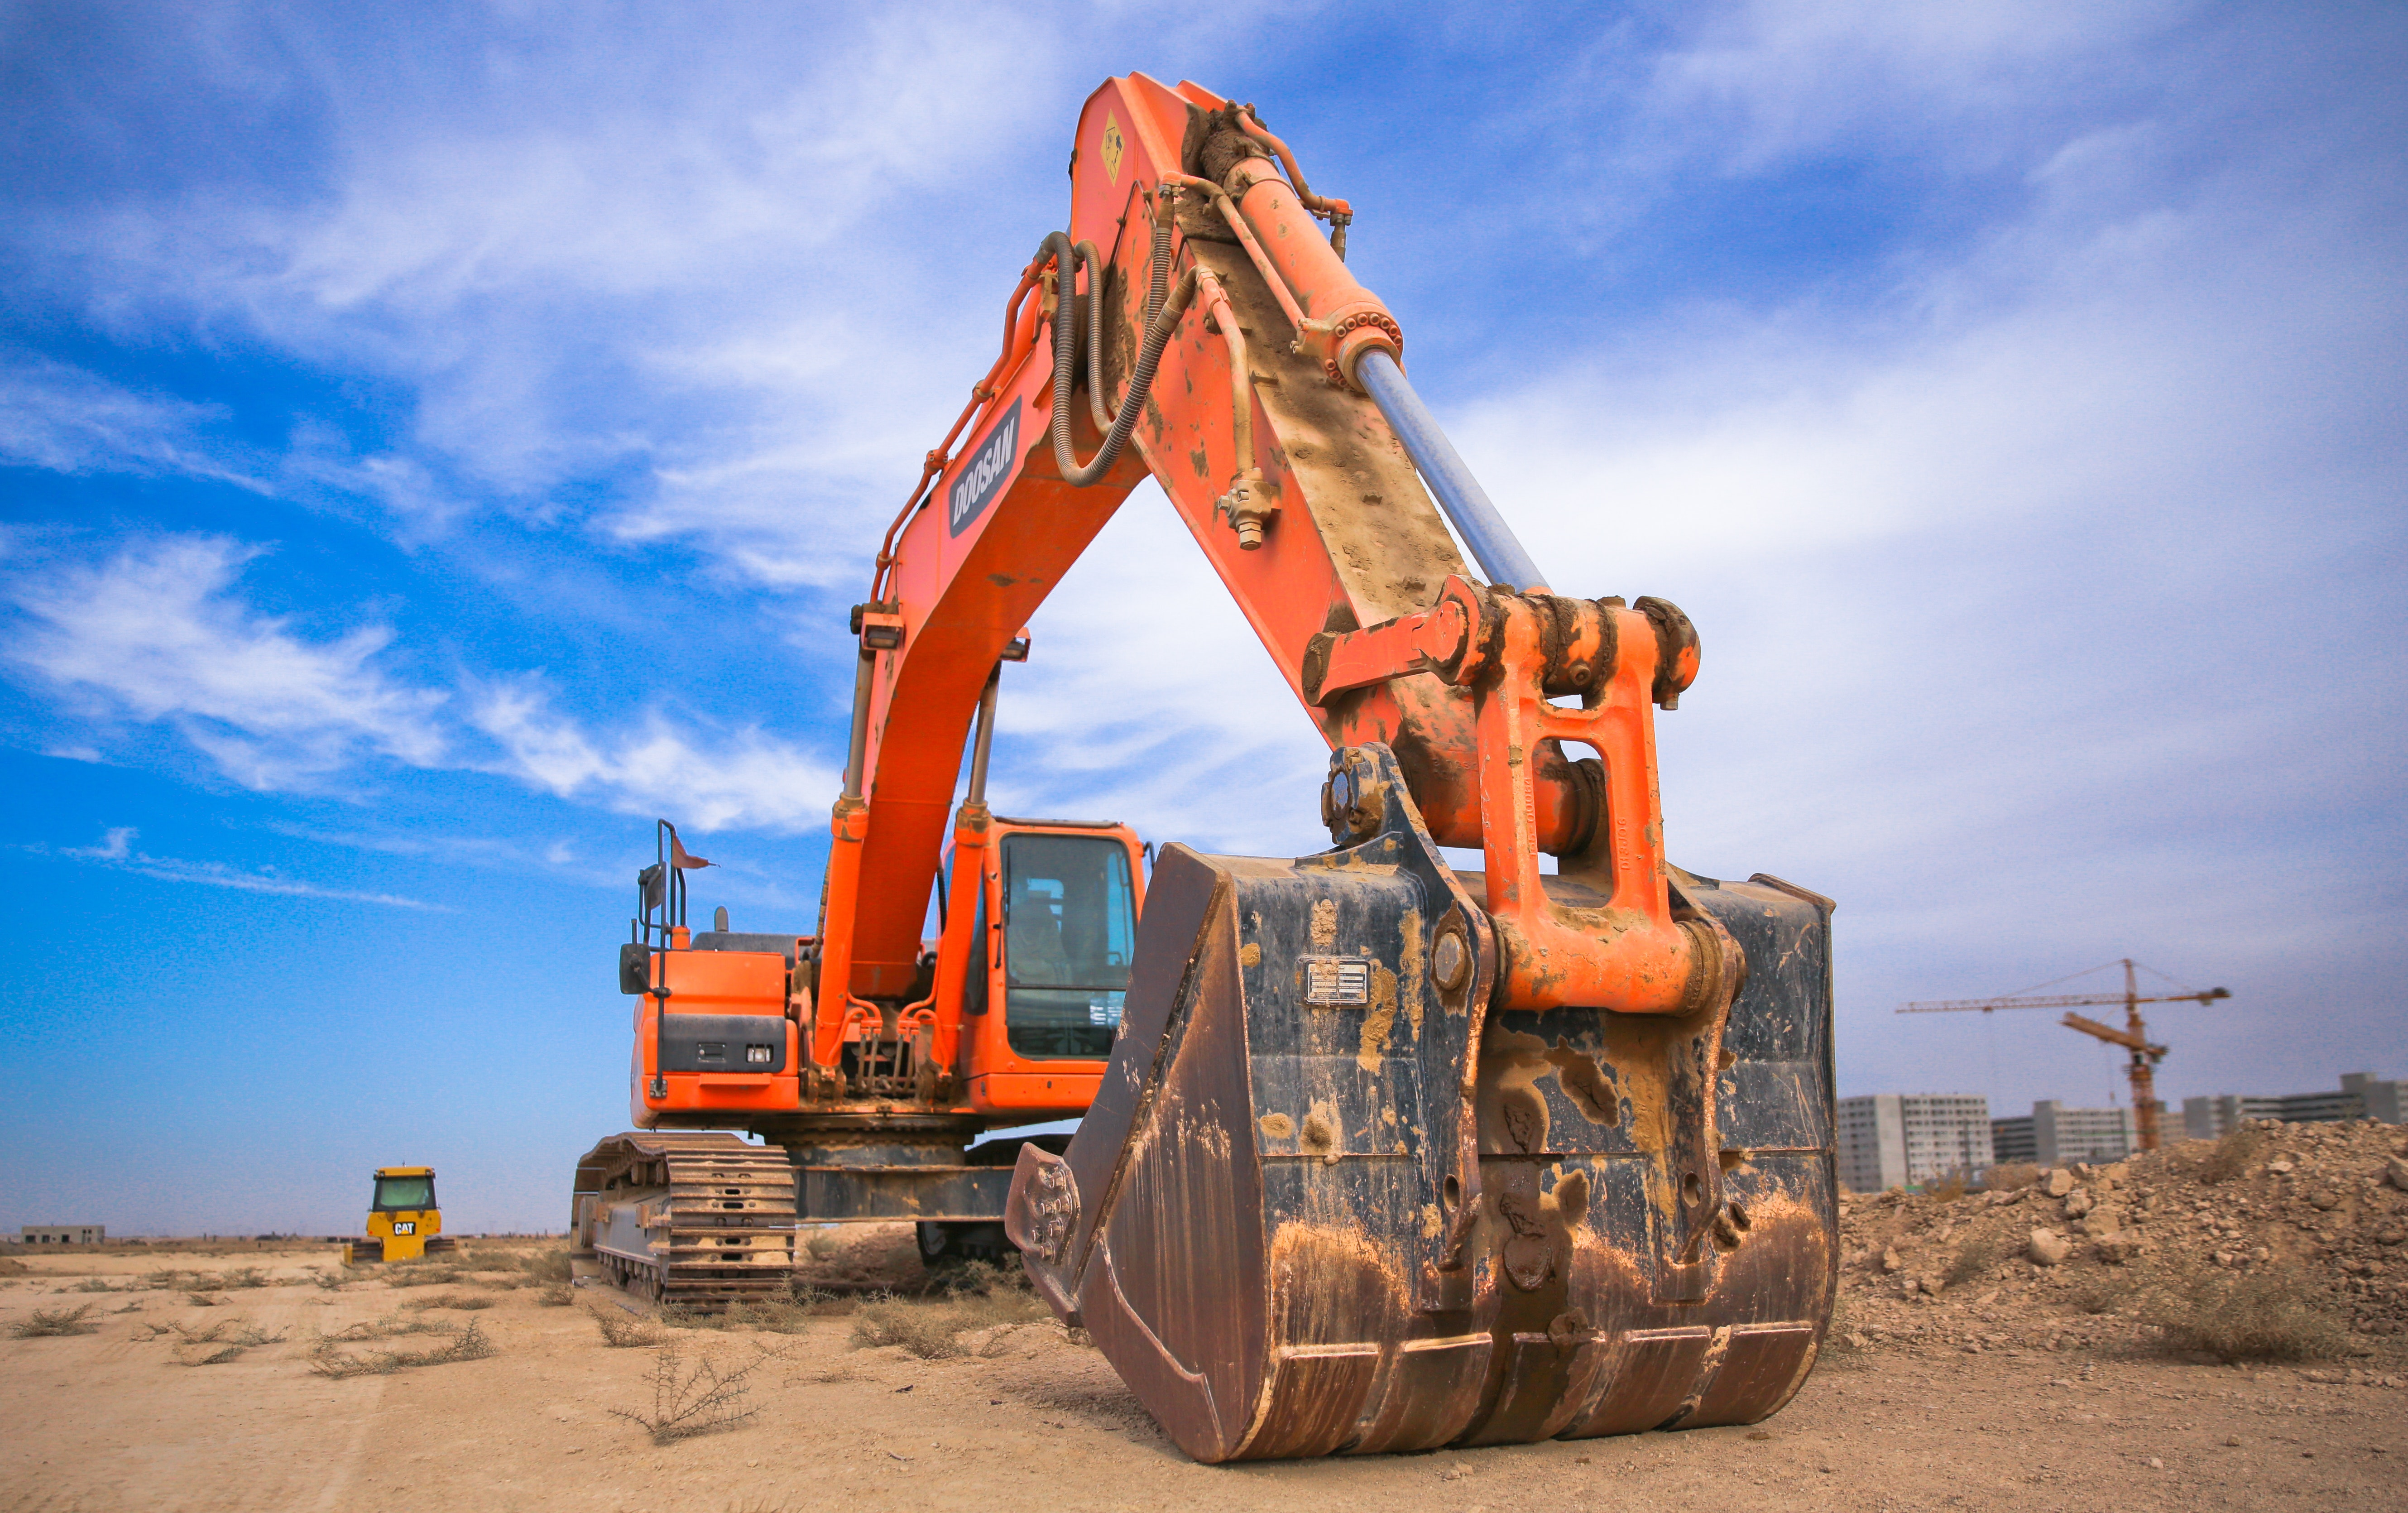 Orange excavator on a building site-vehicles such as this are a risk to health and safety in construction